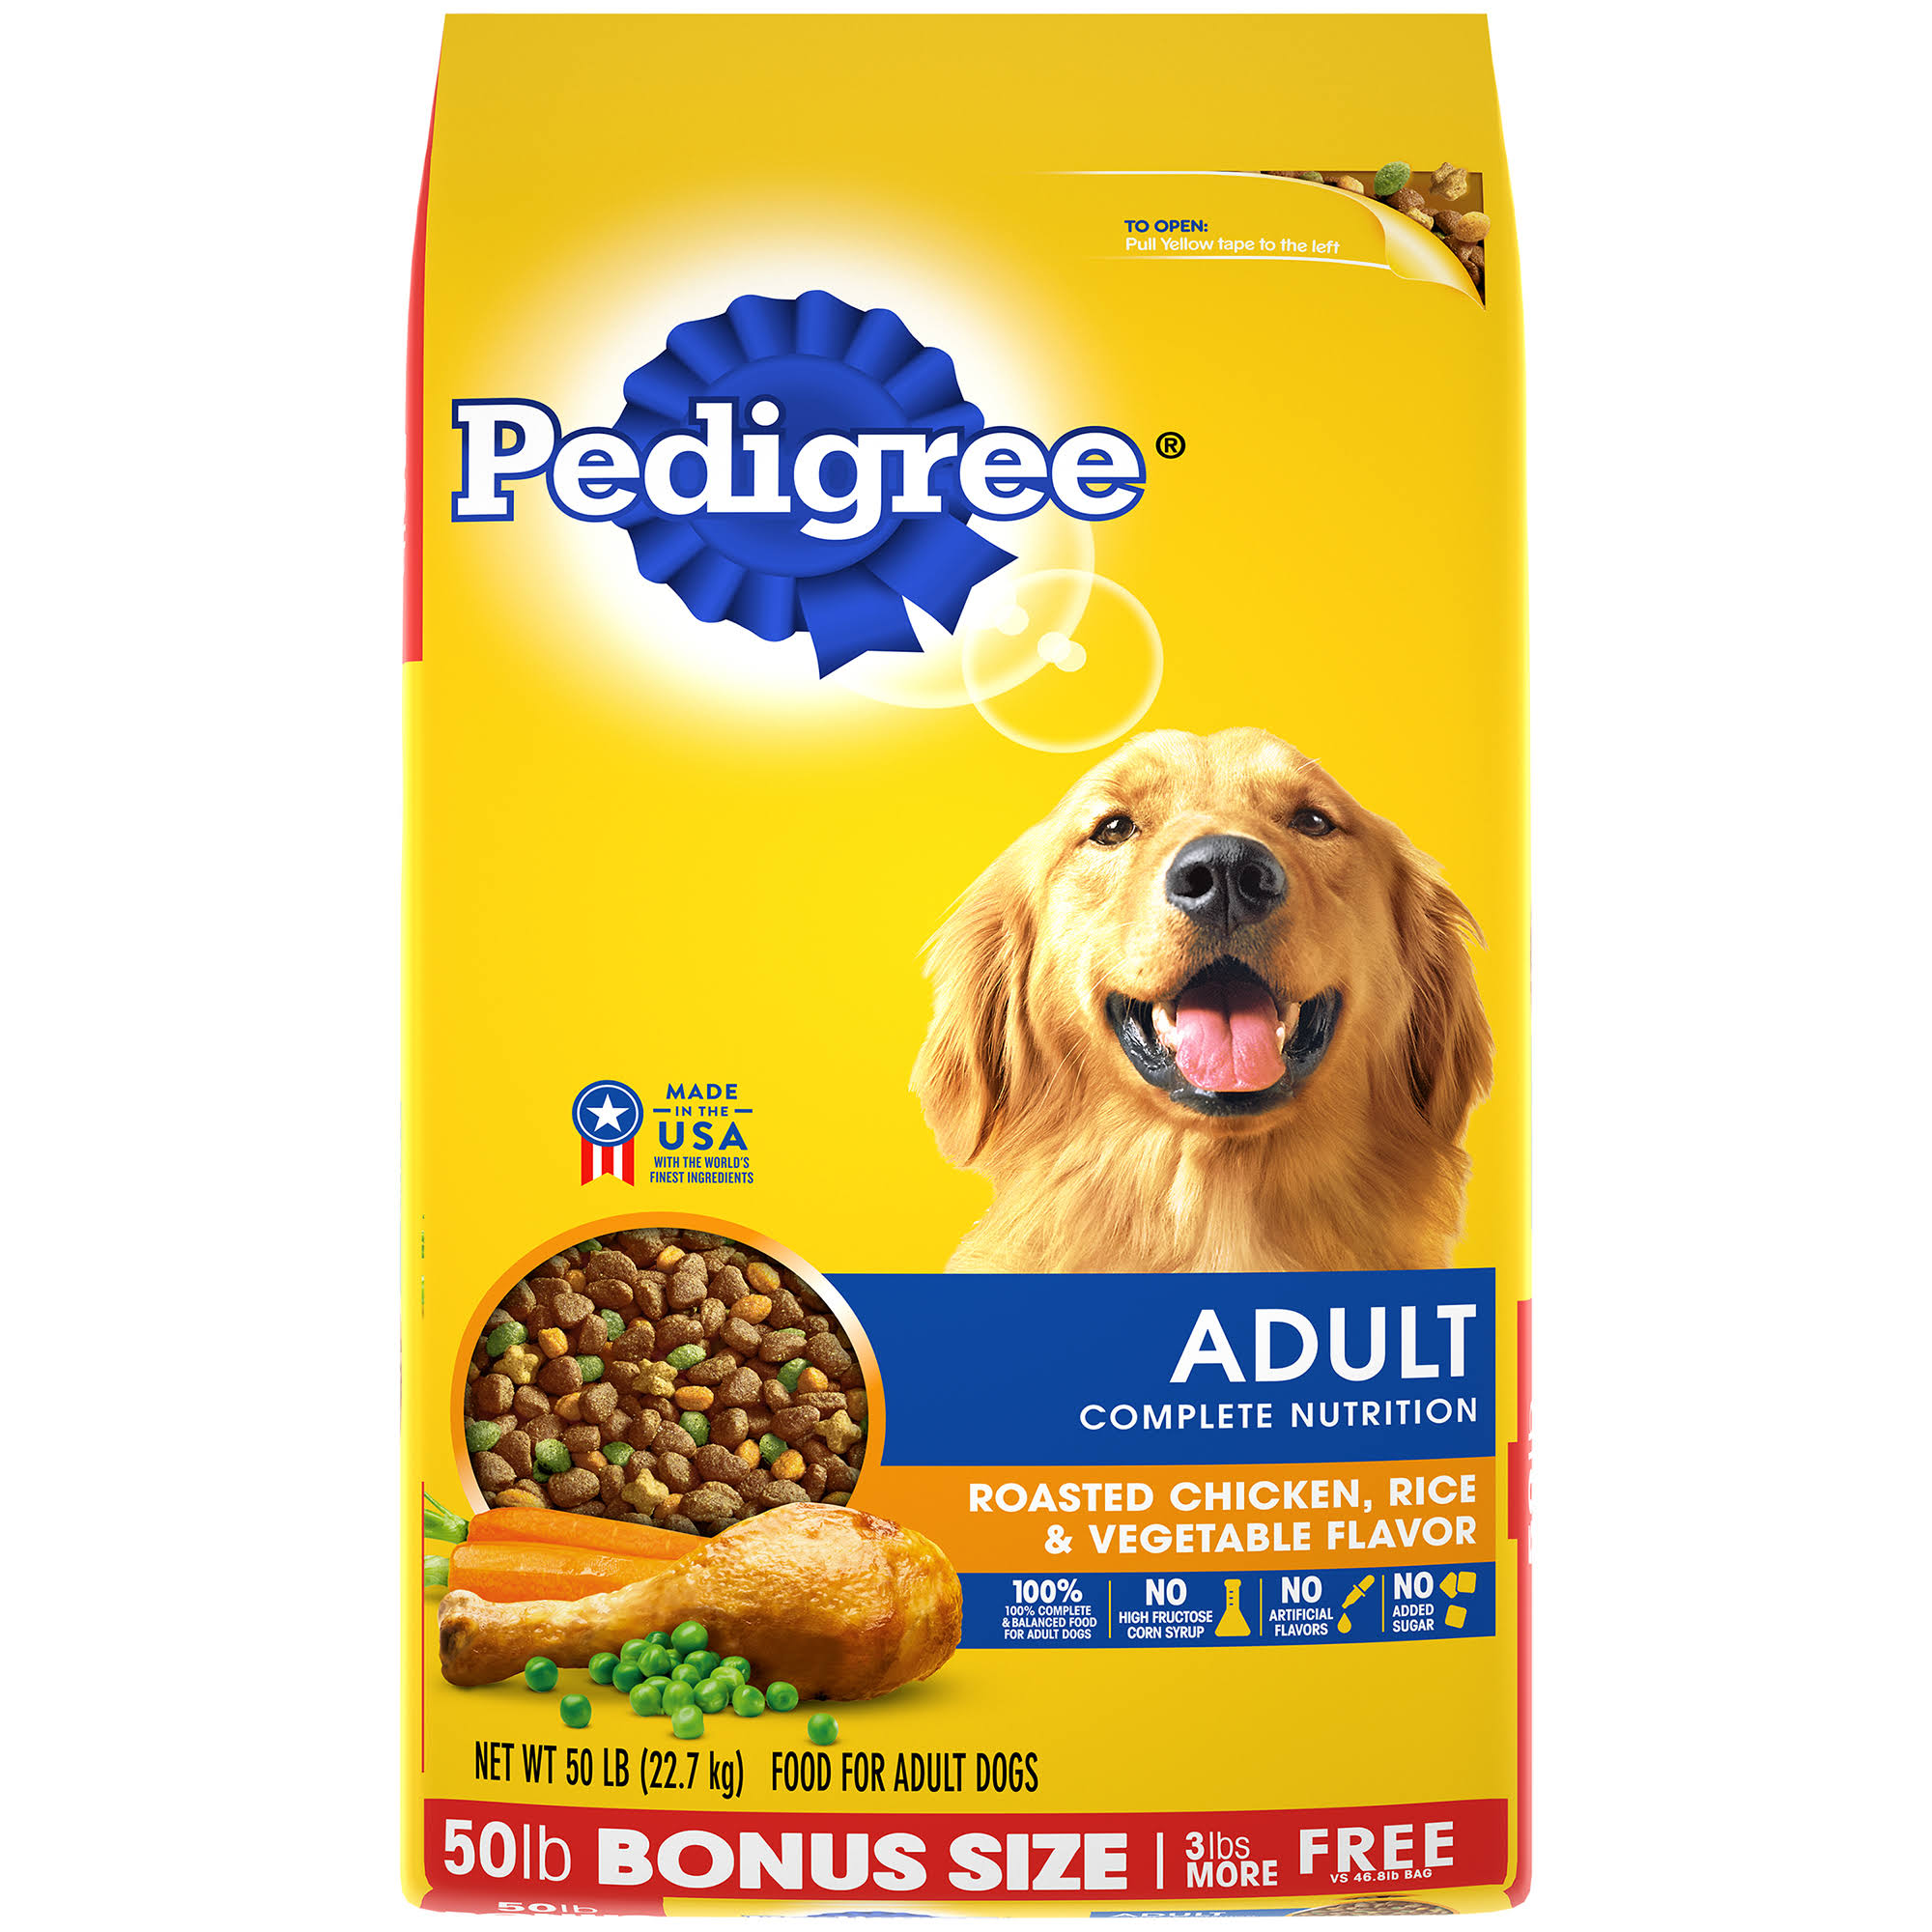 Pedigree Adult Complete Nutrition Dry Dog Food - Roasted Chicken, Rice & Vegetable Flavor, 50lb